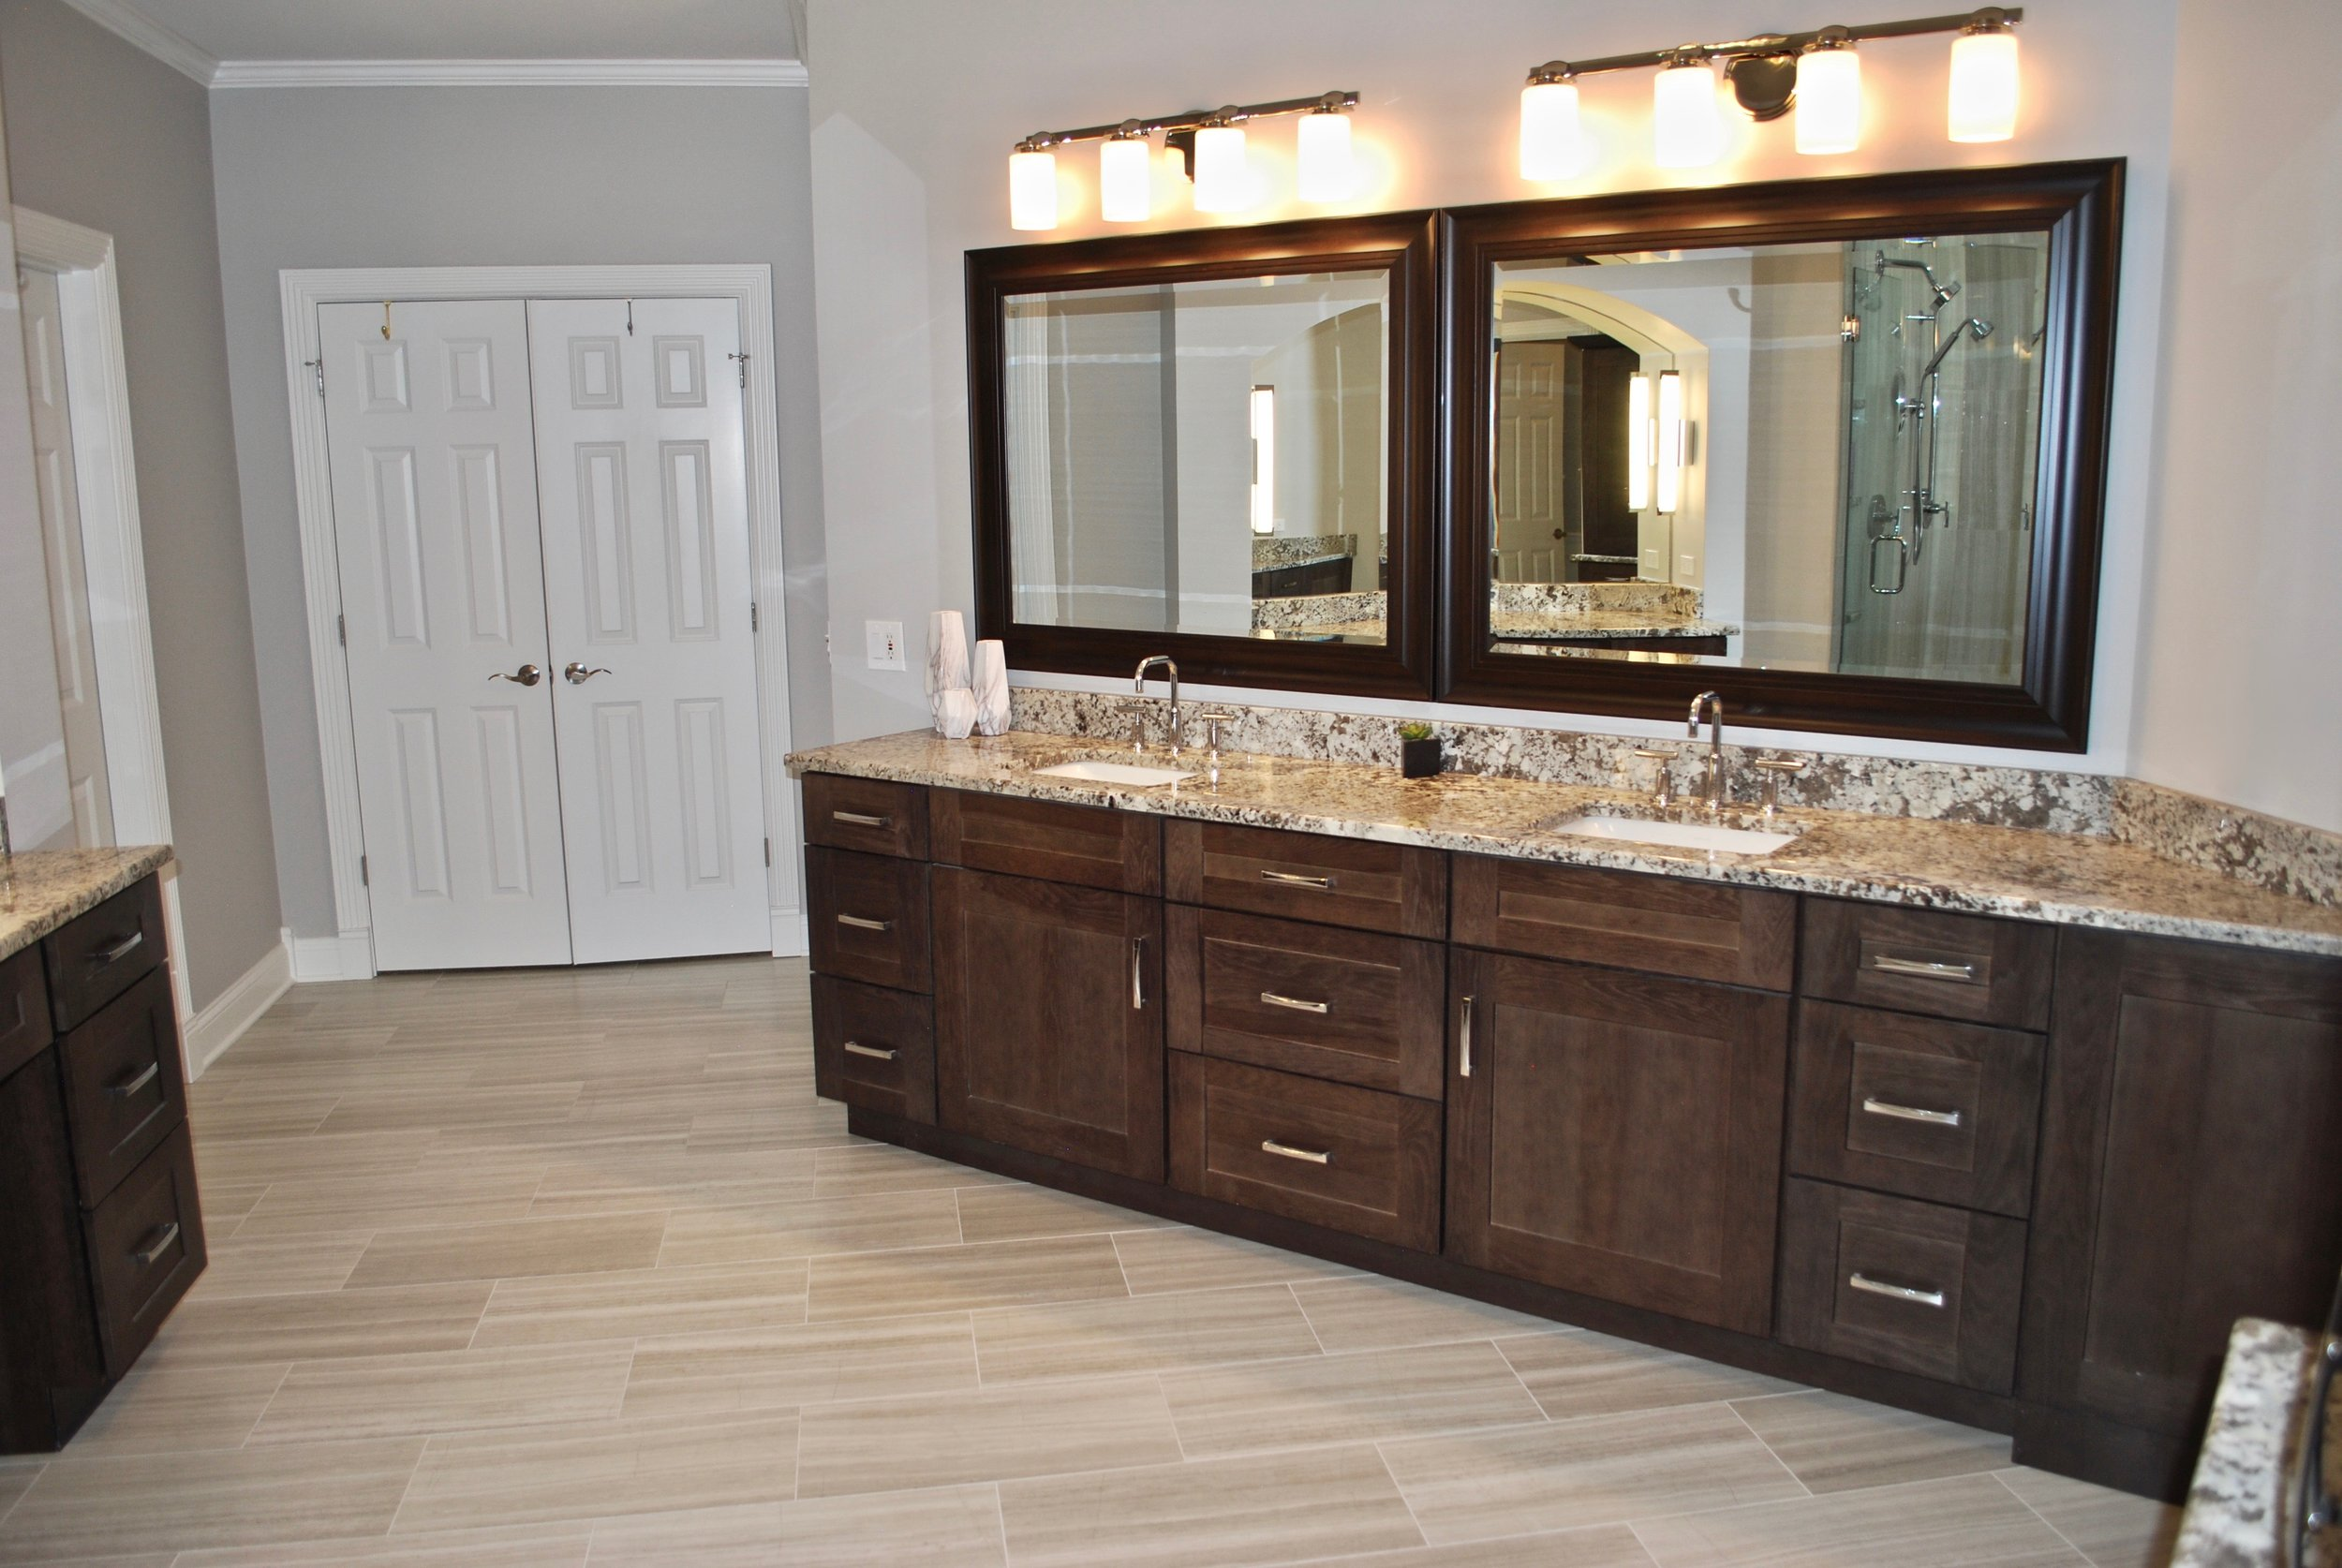 Double Vanity in Naperville IL Custom Bathroom .jpg